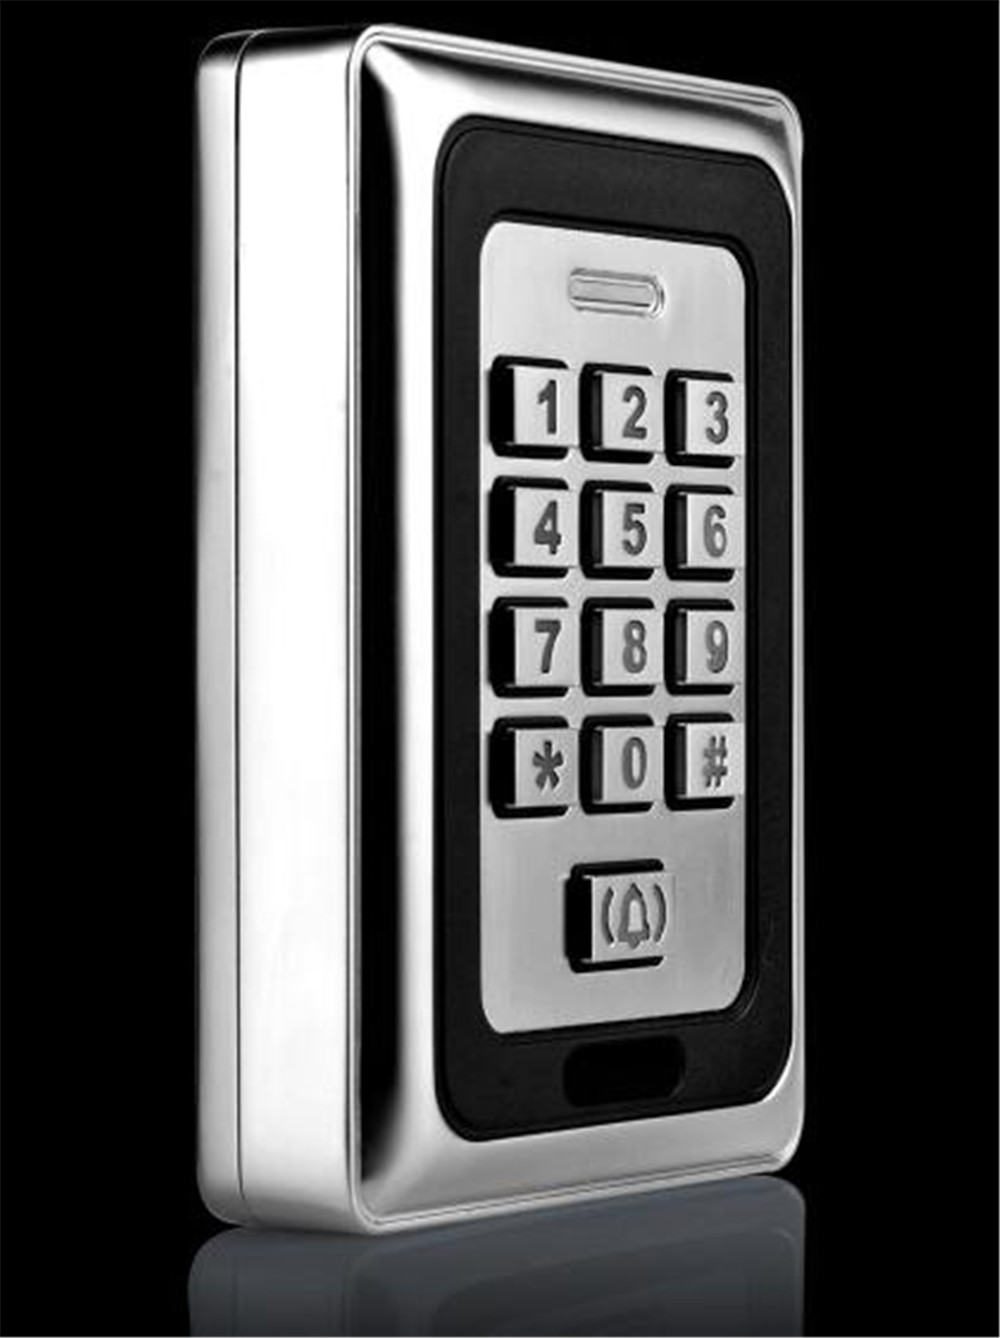 Home Use Metal Keypad Hotel Smart Door Lock Access Control System <br>